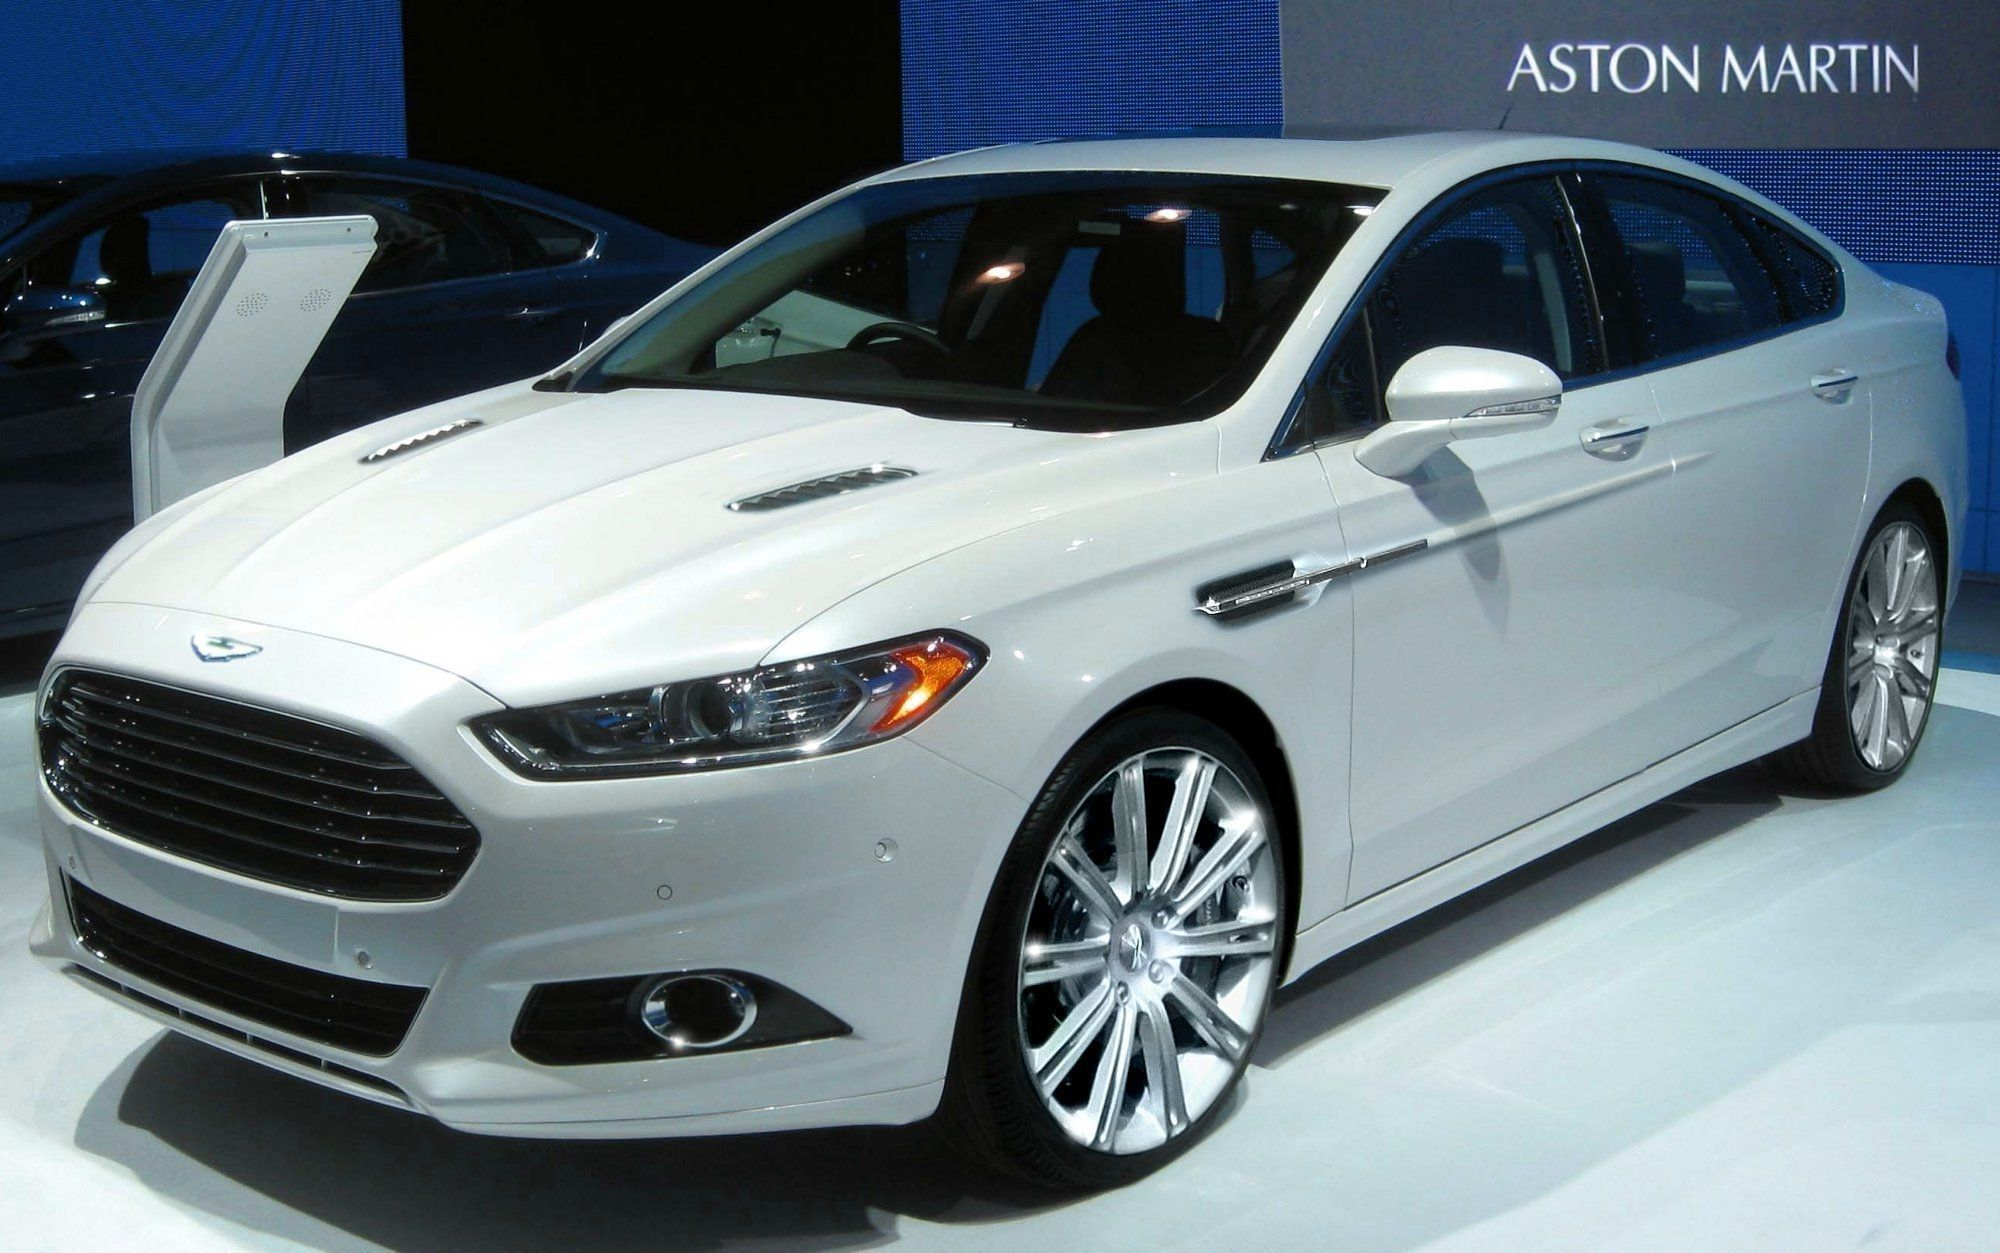 2016 Ford Fusion Hybrid The Leading Multinational American Automaker Offers Ers A Ground Friendly Subsute To Normal Mid Size Sedans By